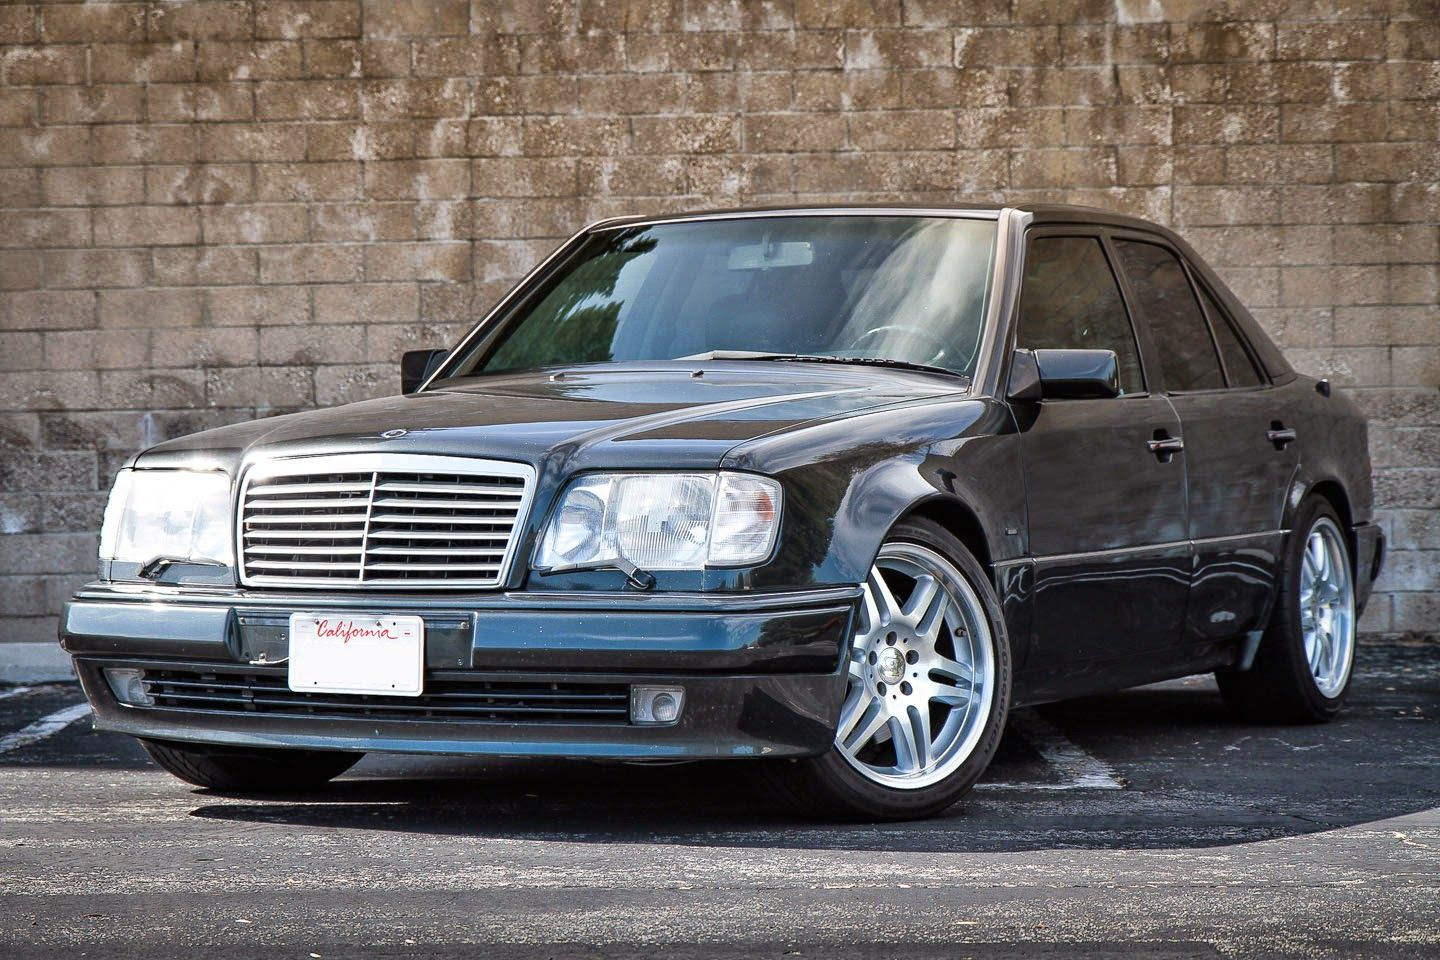 Mercedes benz w124 e500 brabus style large photos benz for Mercedes benz styles